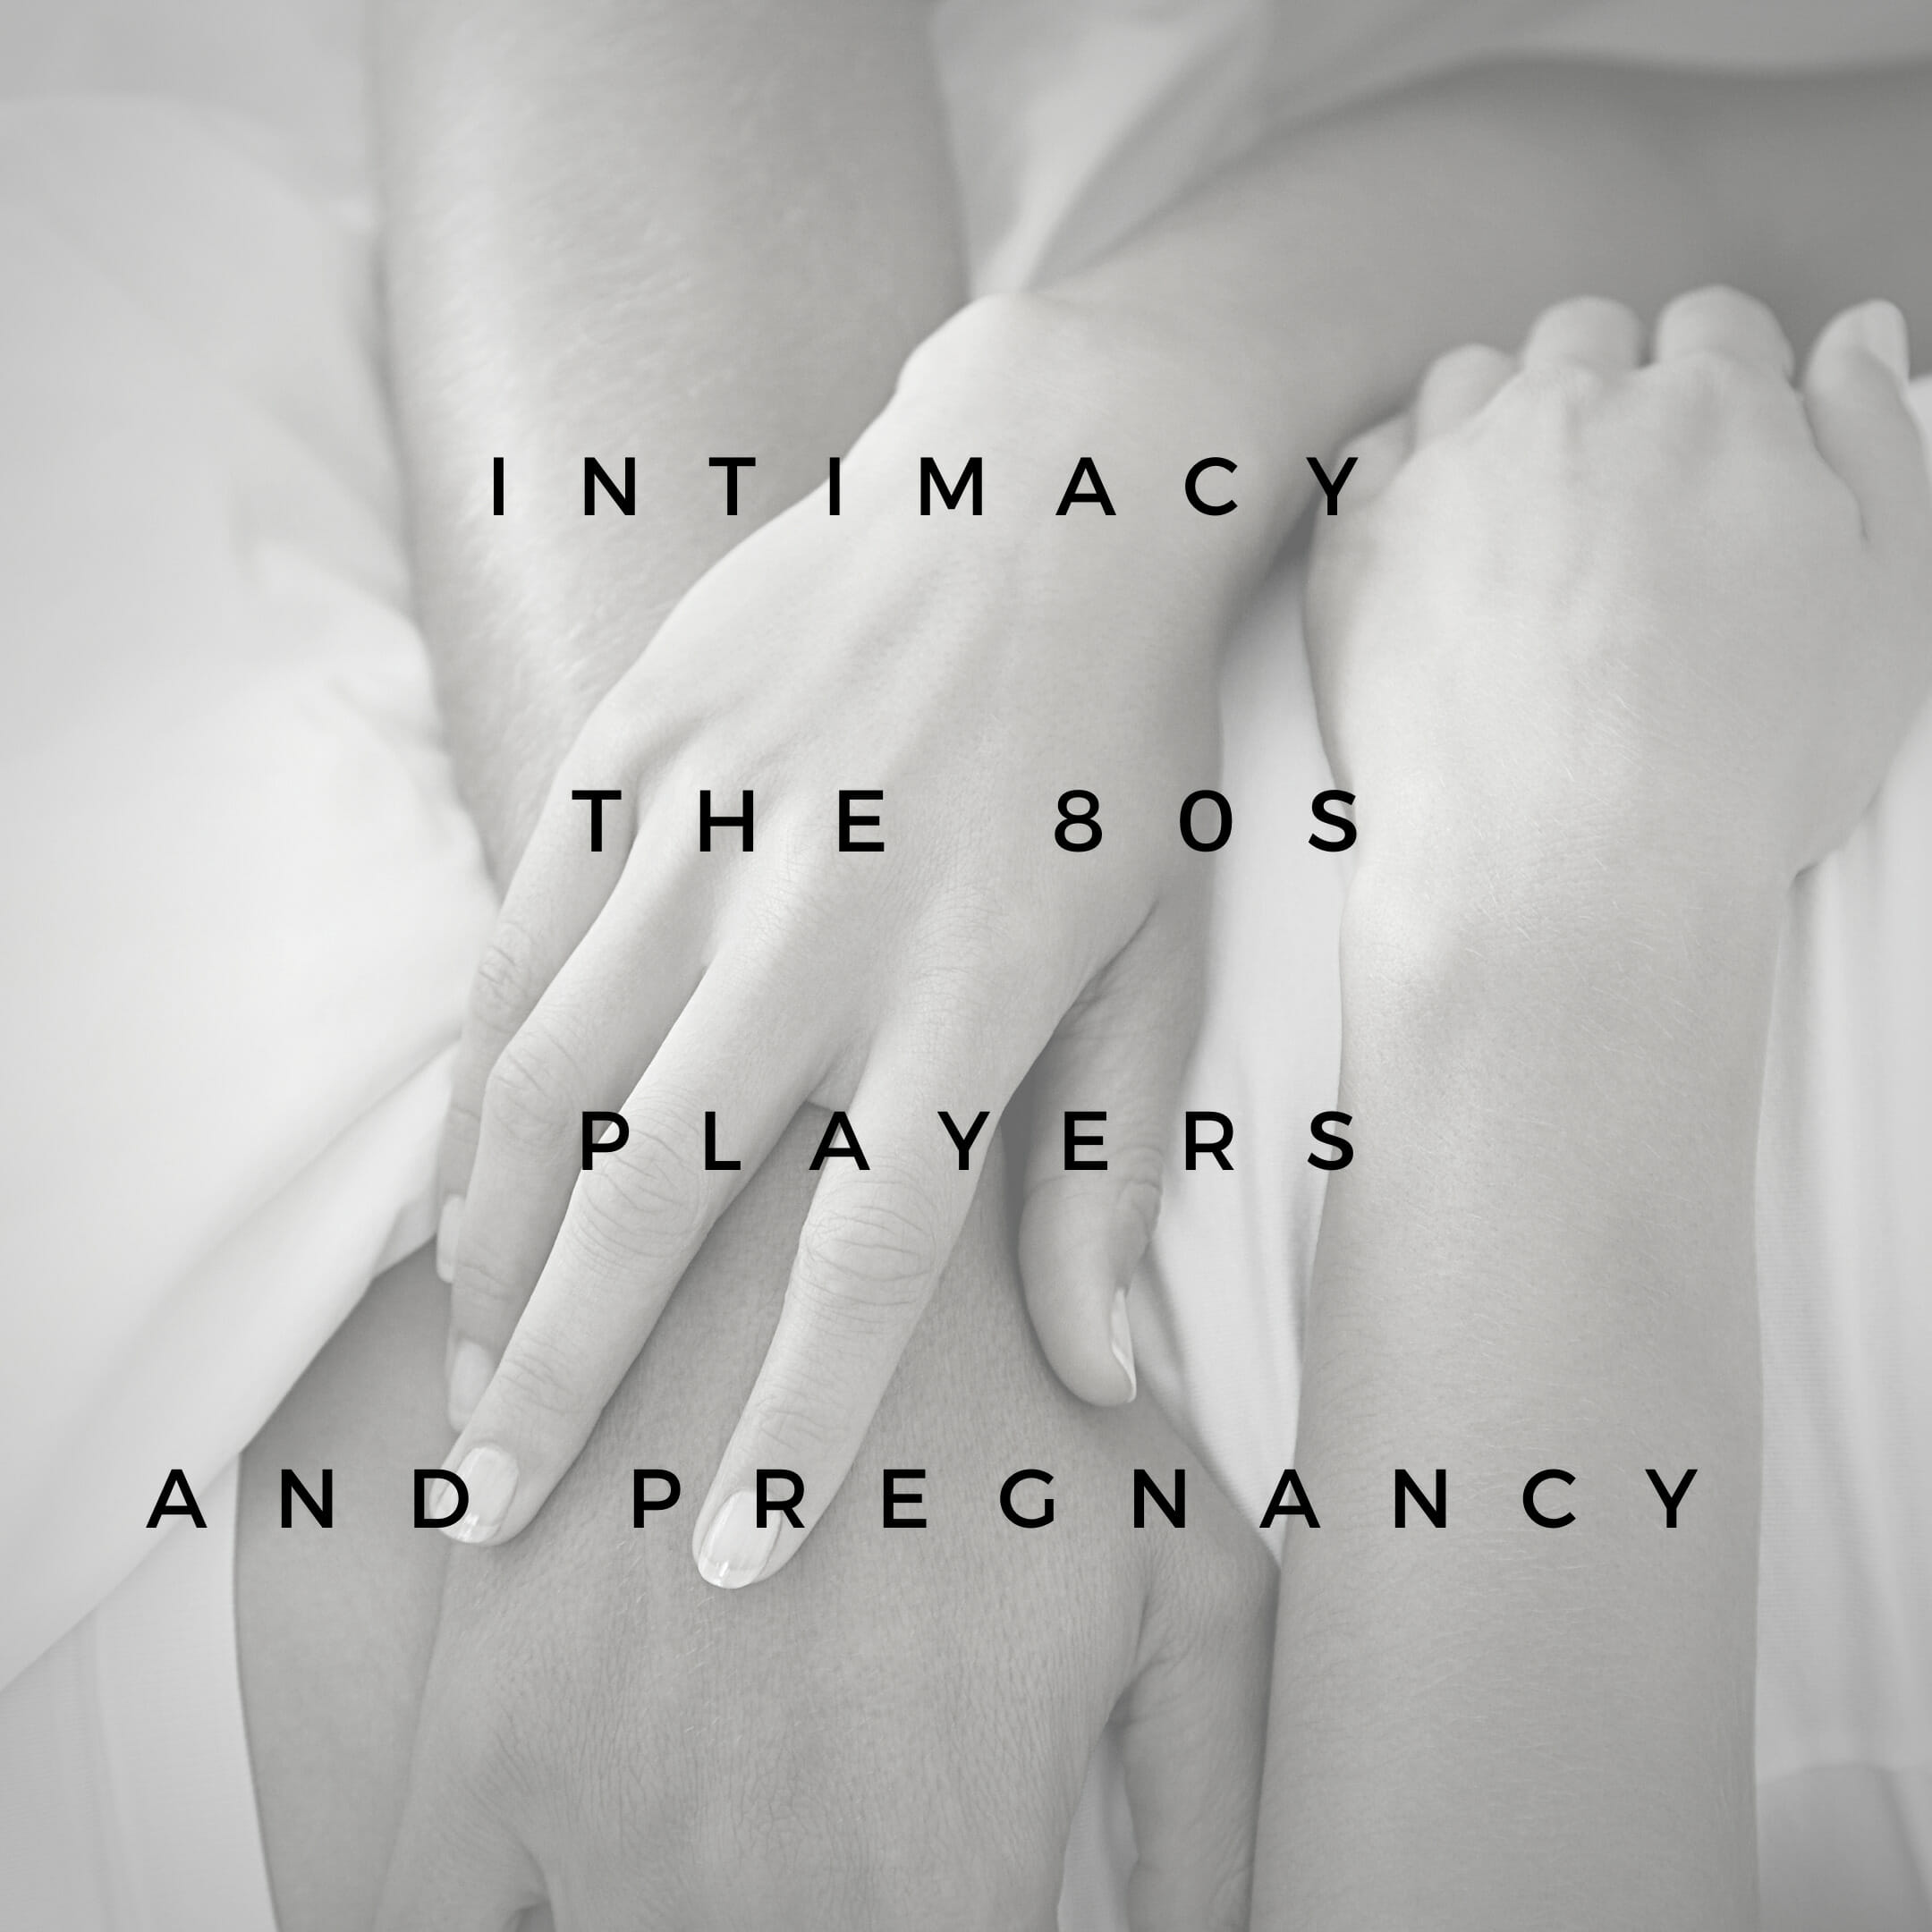 Intimacy and players